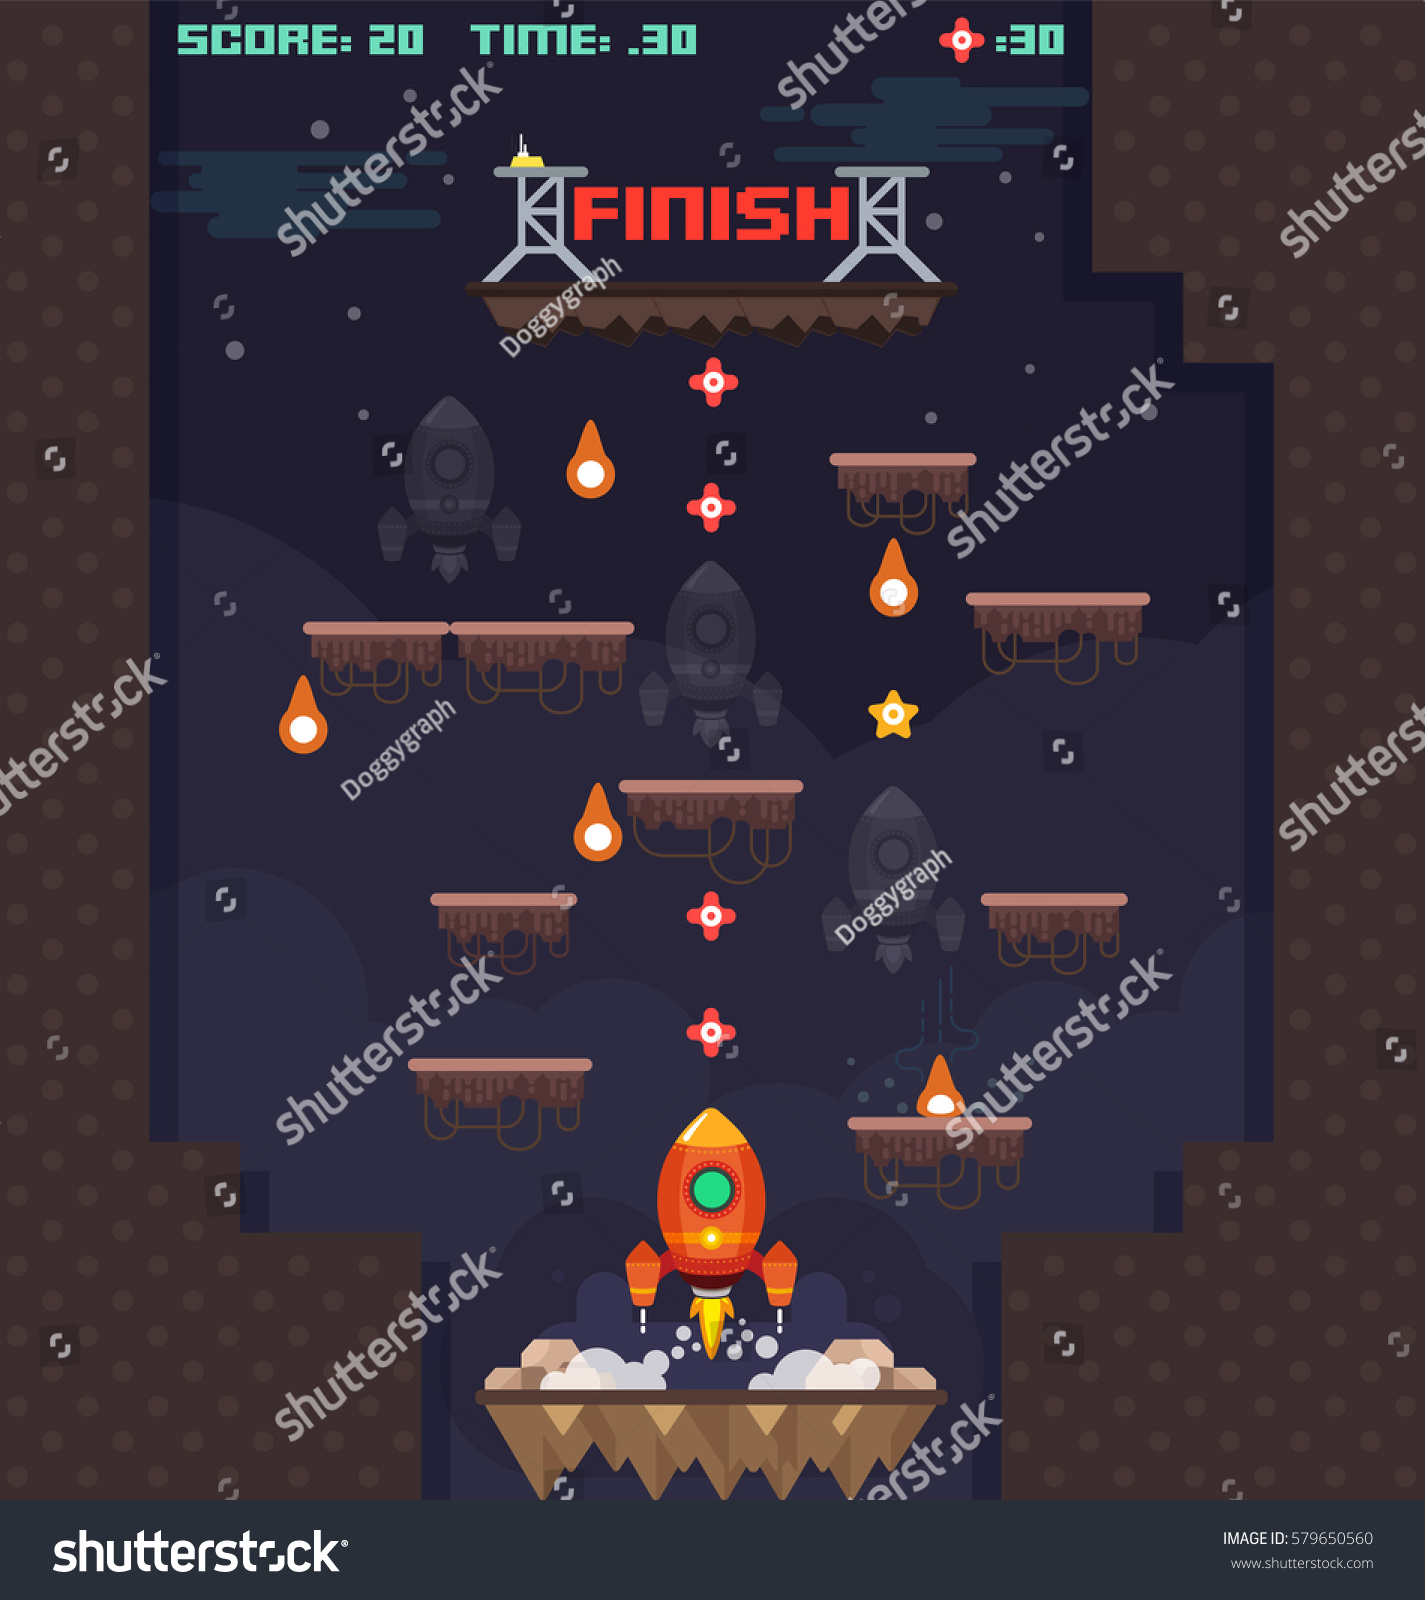 Spaceship Planets Game Design Elements Vector Stock Vector Royalty - Spaceship design game